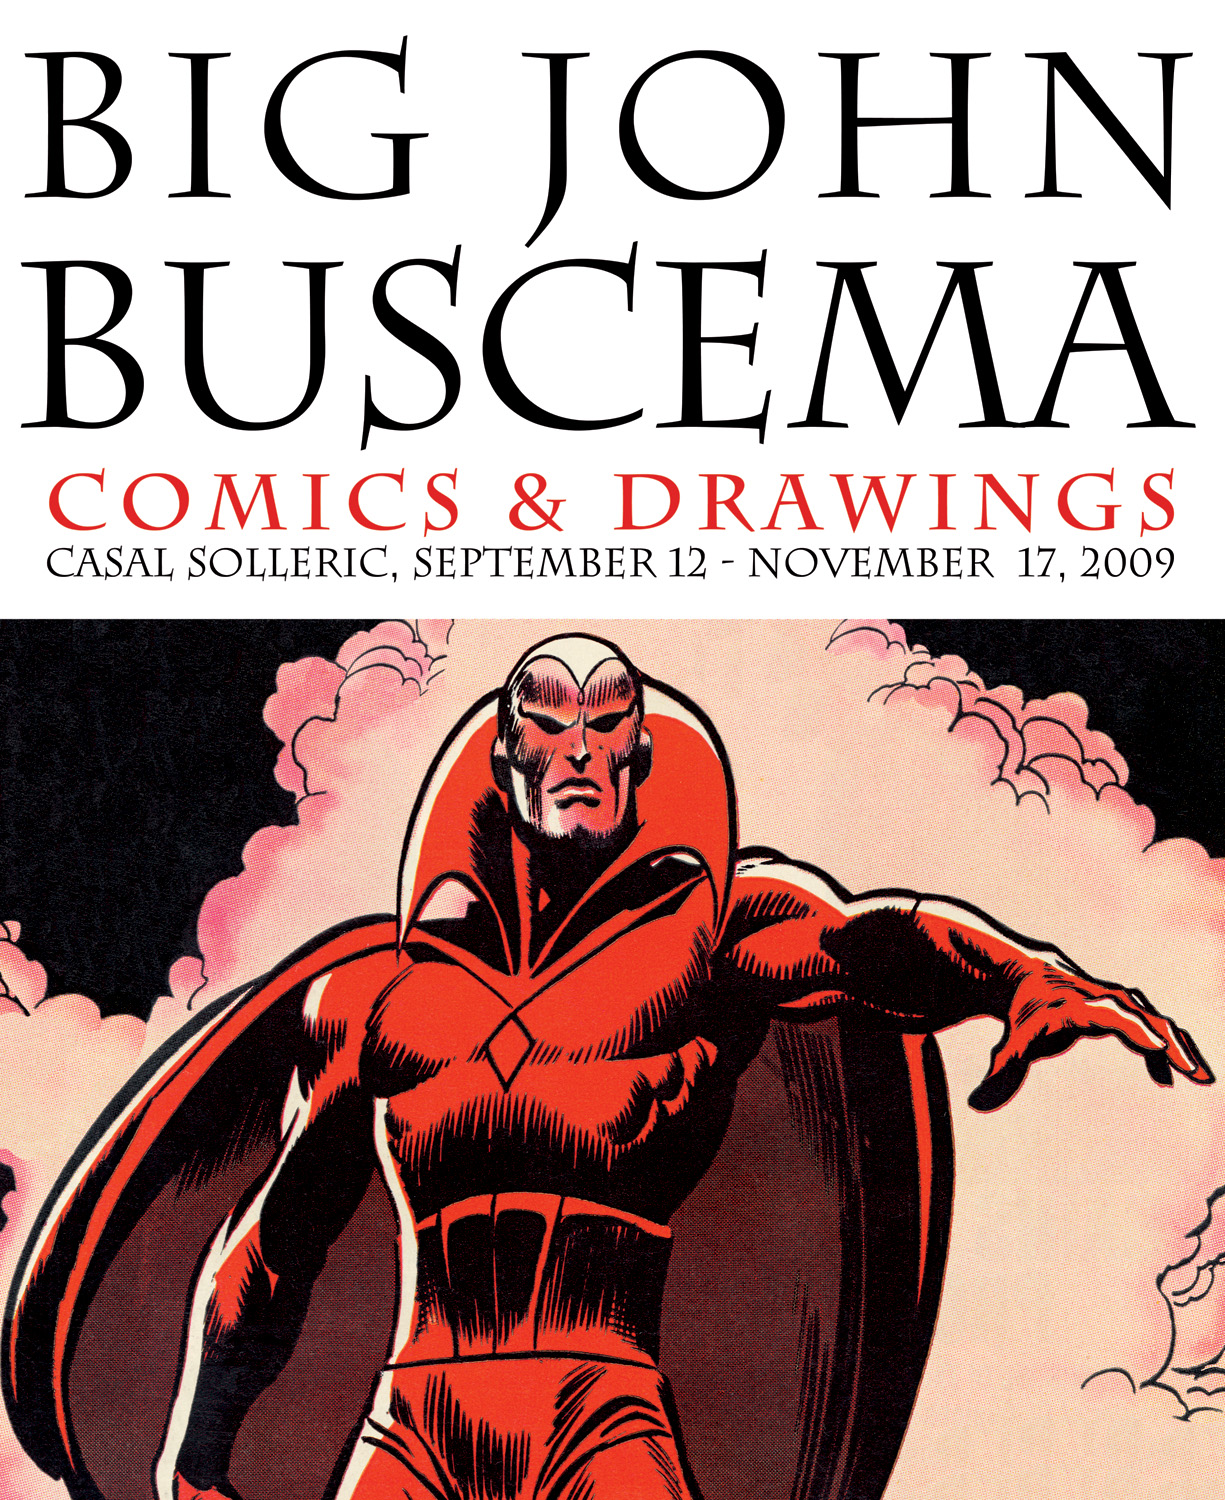 Big John Buscema